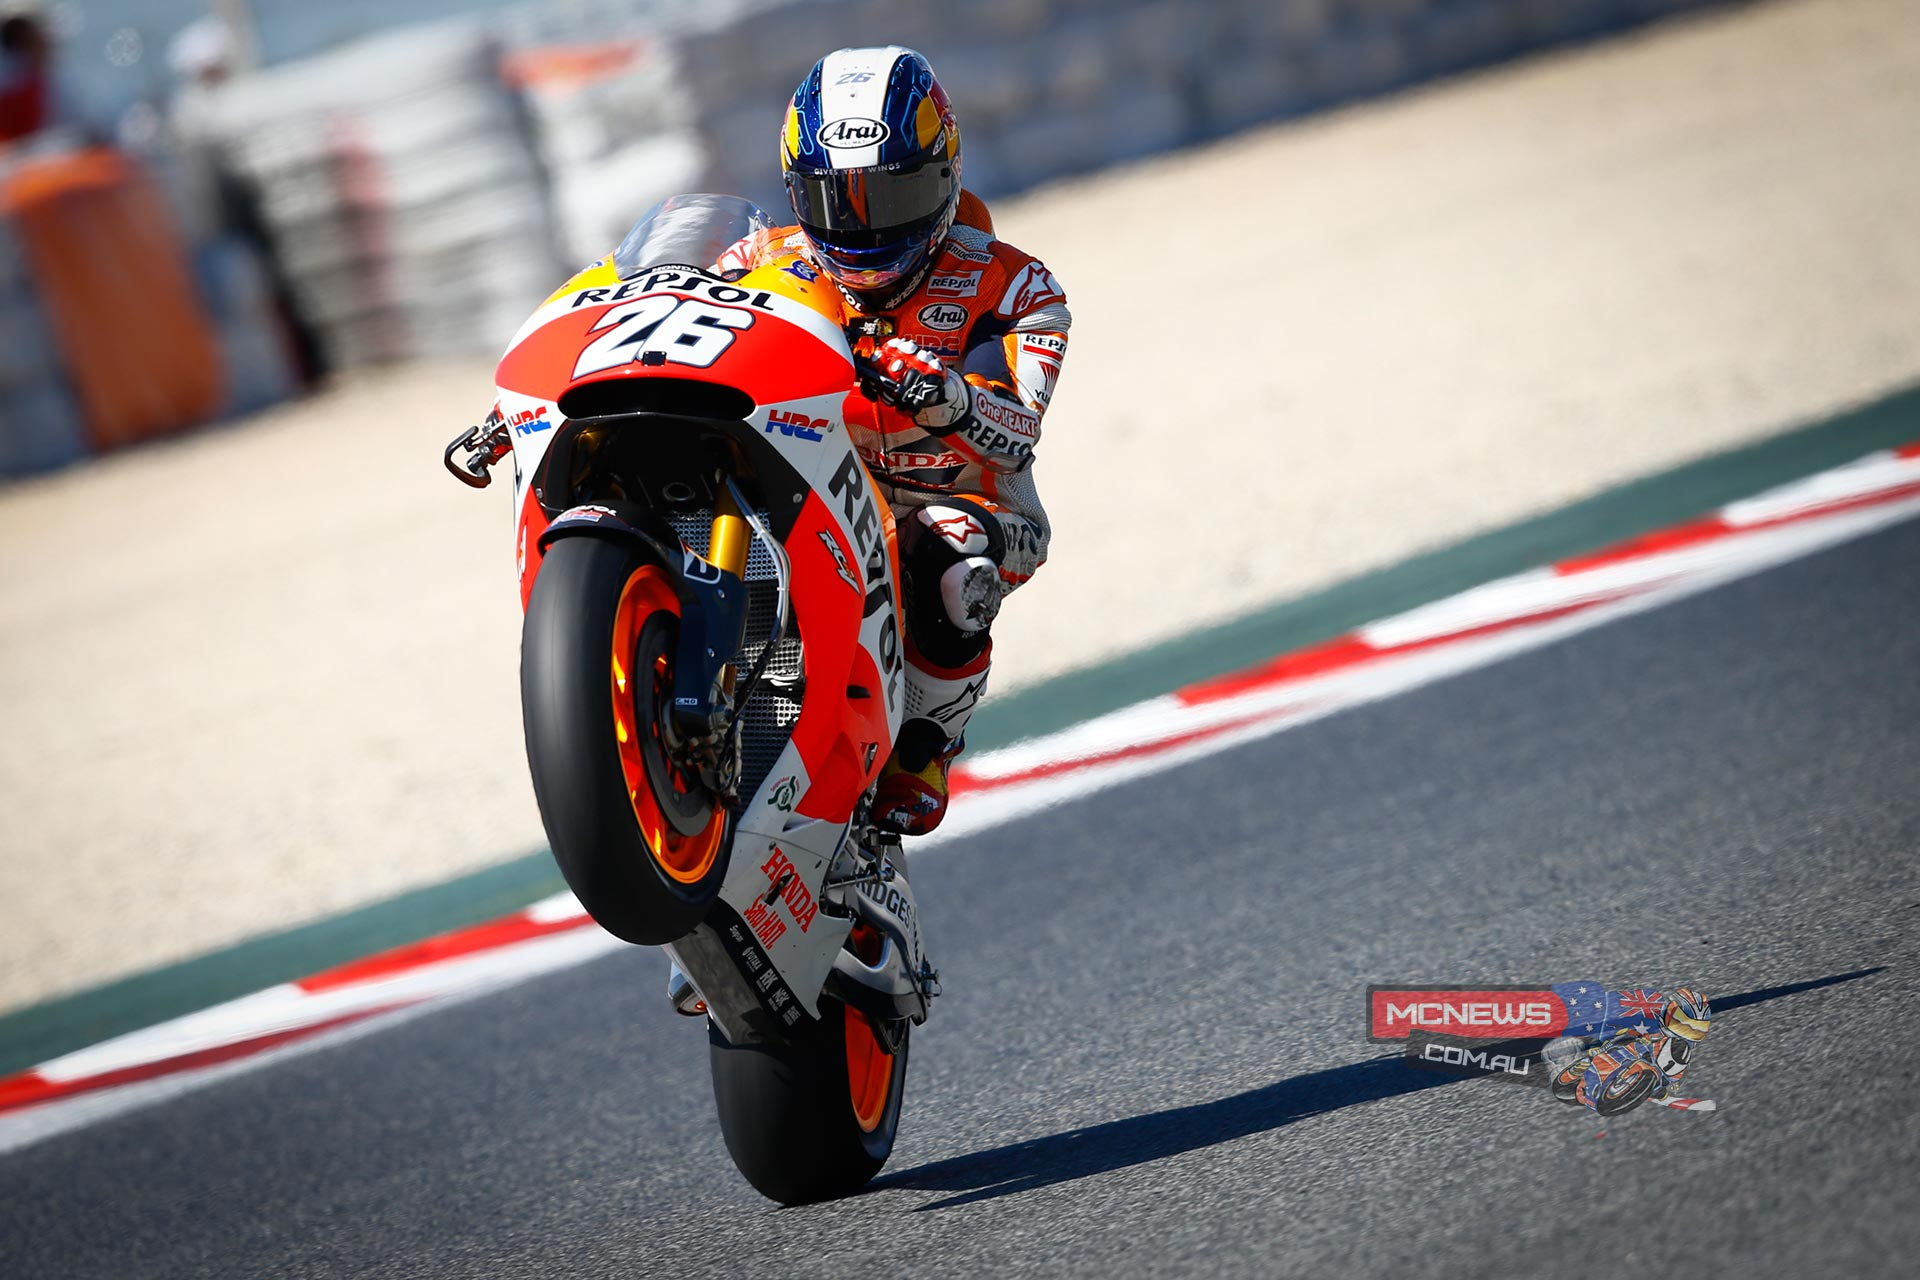 "Dani Pedrosa - 1st - 1'40.985 - ""I am very happy to have taken pole position today, in front of my family and the home fans! I am also delighted that, for the first time this year, I felt good on the bike in qualifying. I'll try and get a good start from pole position tomorrow, I am sure that it will be very hot and we will have to manage the tyres well during the race, but we will try to do as well as possible!"""